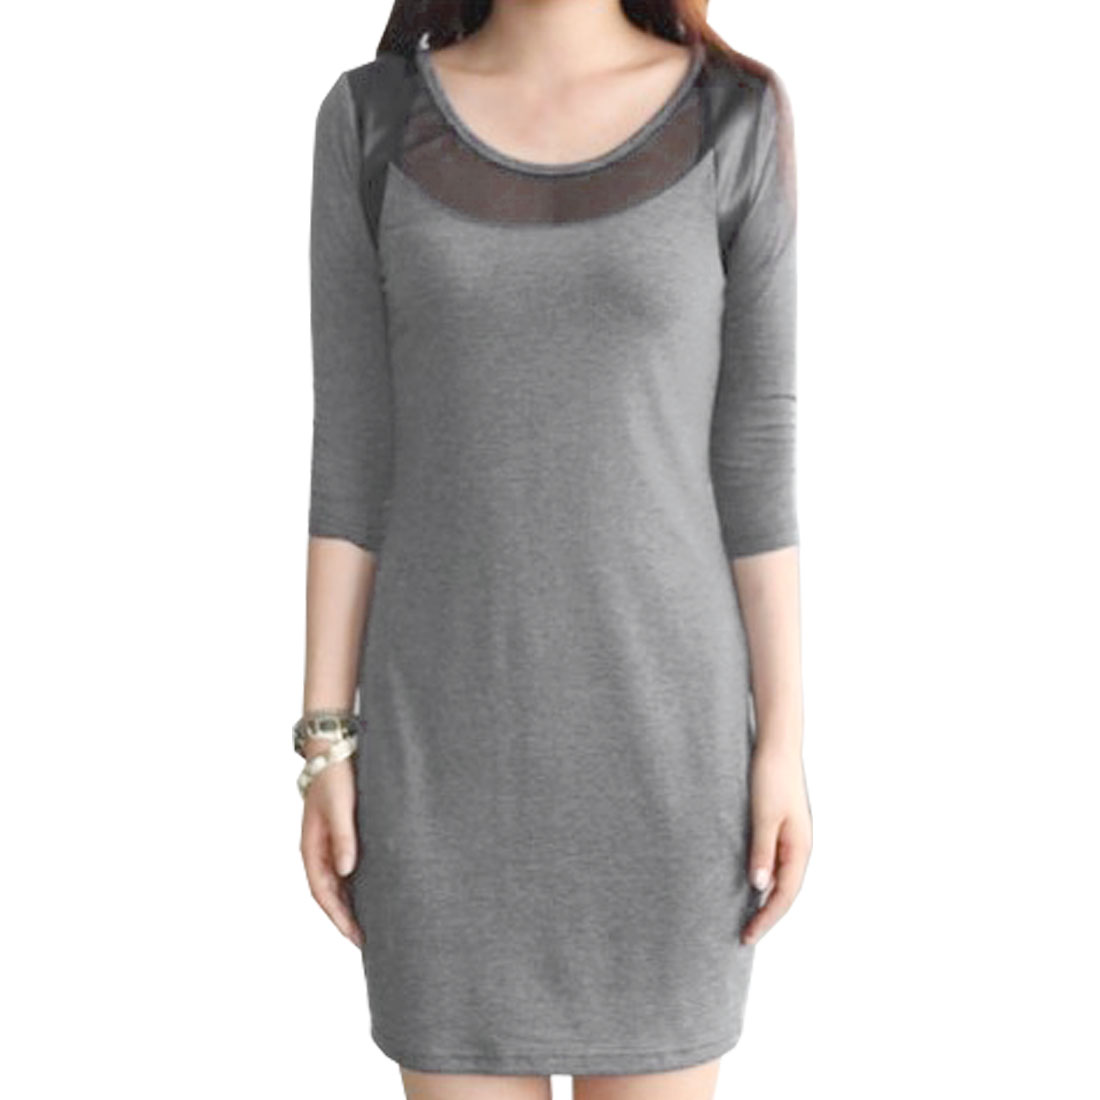 Ladies Gauze Splicing Round Neck Closefitting Dress Gray XS